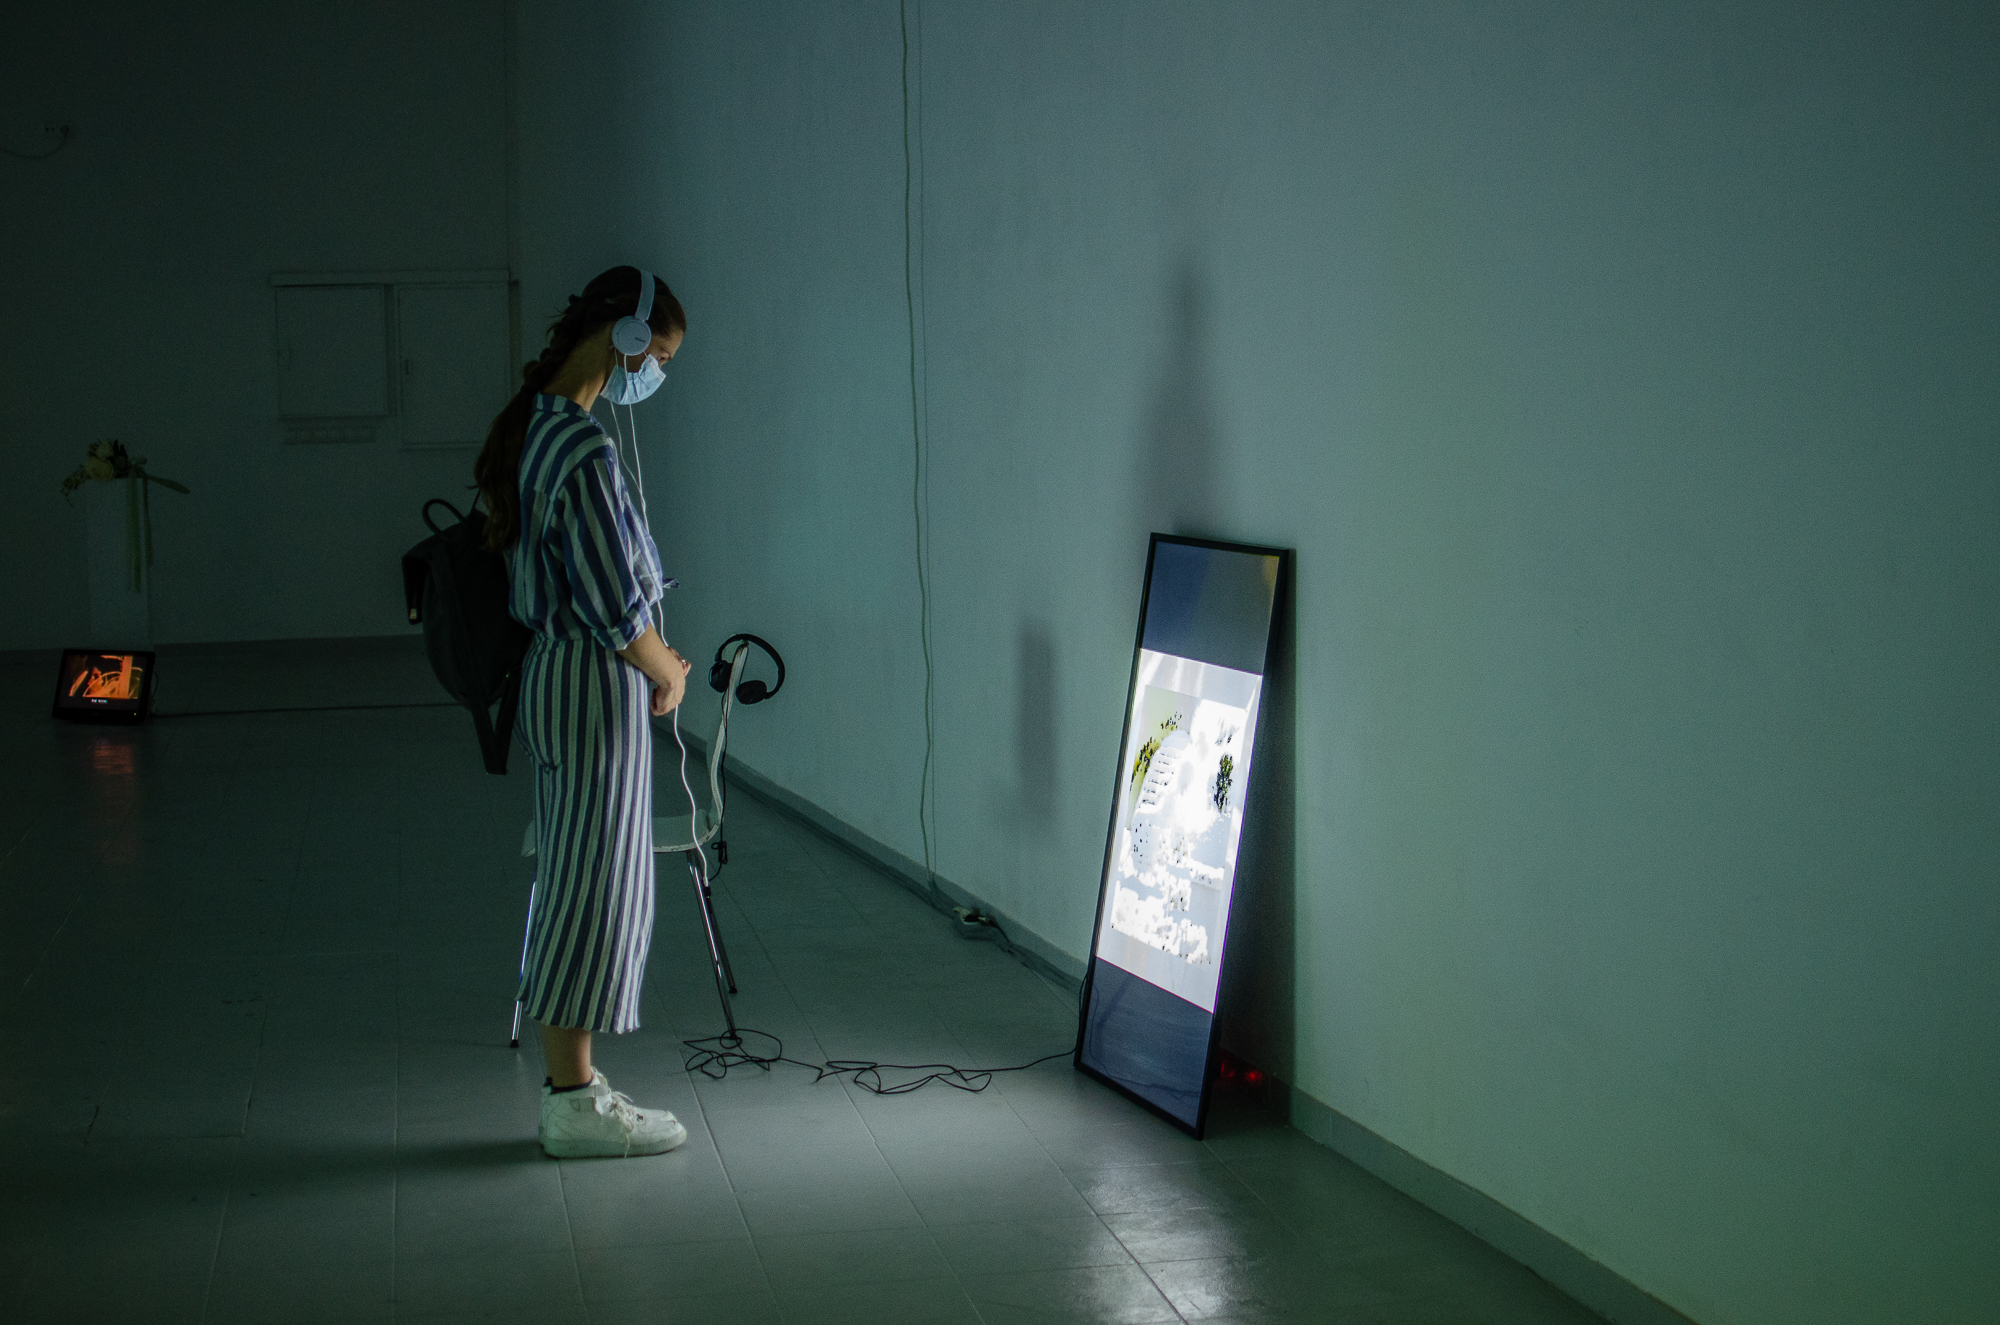 In-Escalation-ao-kunsthalle-PILOTENKUECHE-online-residency-vernissage-photos-Fanni-Papp-14